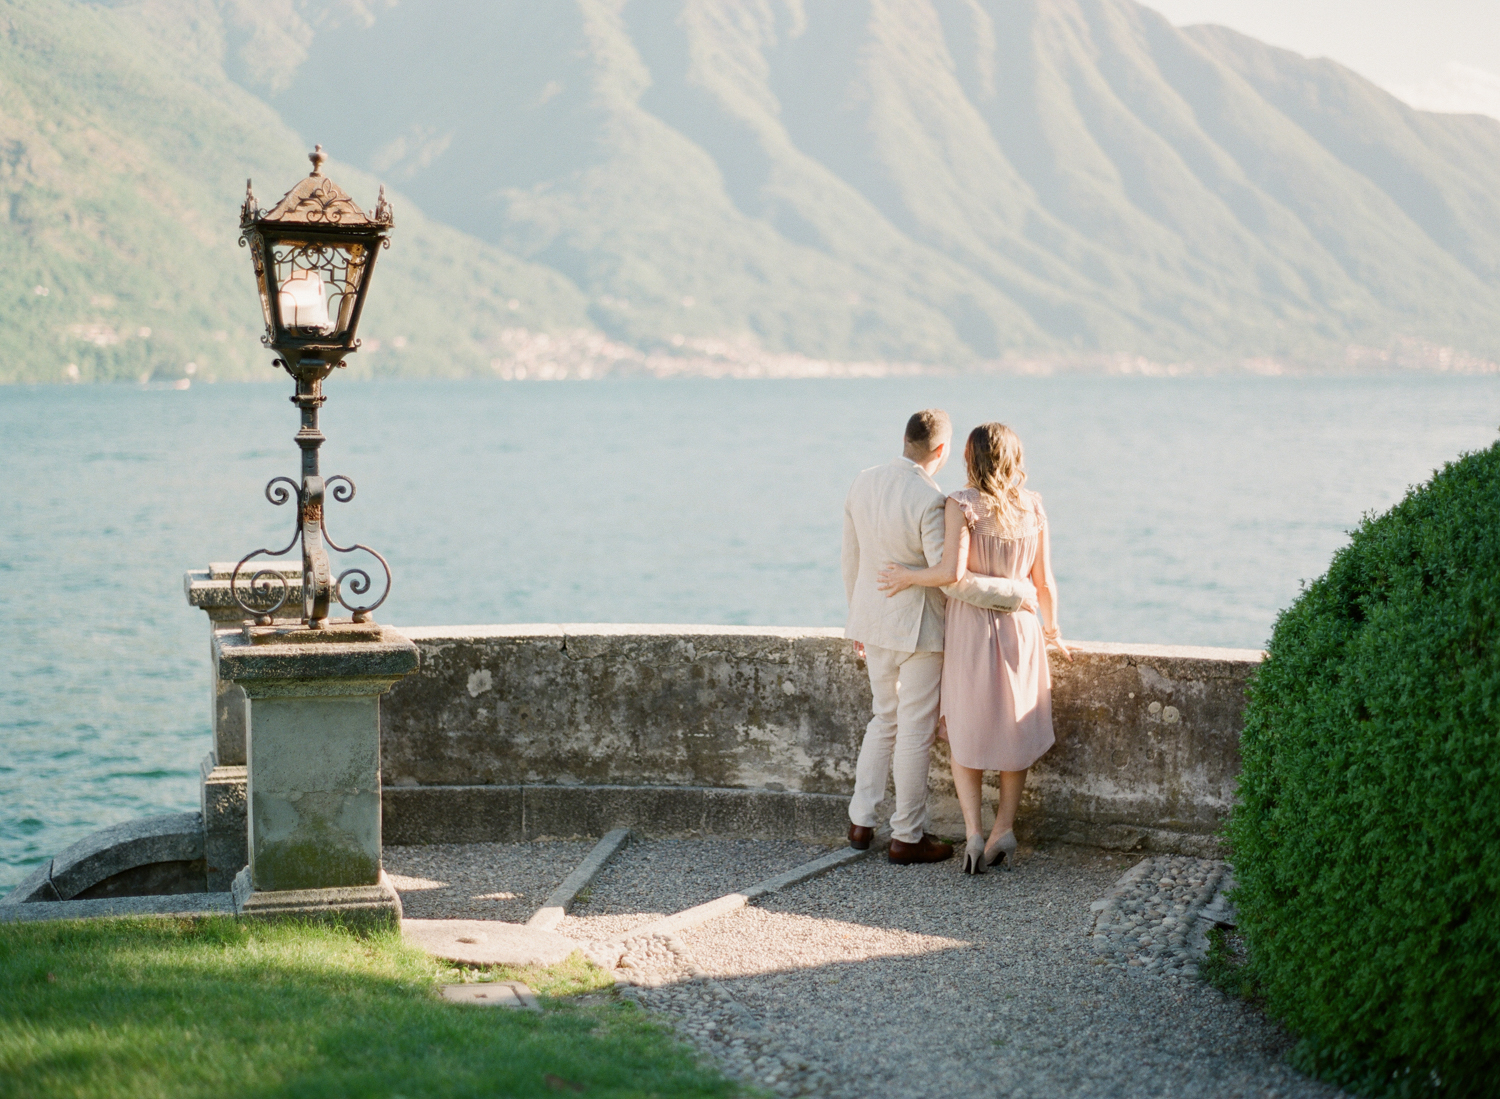 Lake_Como_wedding_photographer_nikol_bodnarova_lake_como_film_wedding_photographer_10.JPG